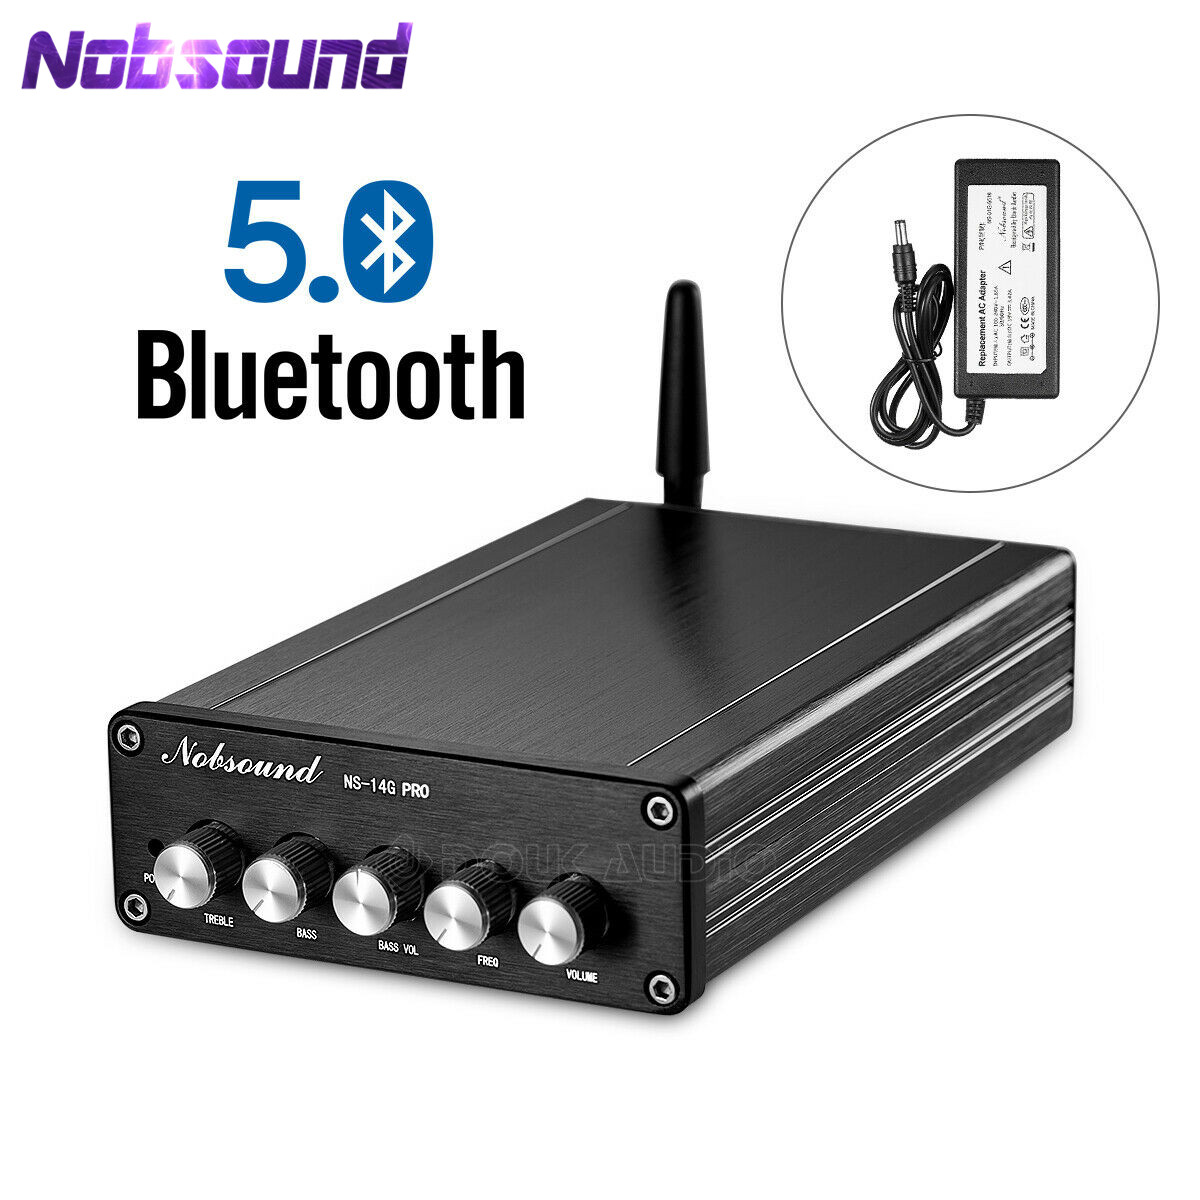 Nobsound Bluetooth 5 0 HiFi TPA3116 Digital Power Audio Amplifier 2 1 Channel Stereo Audio Amp